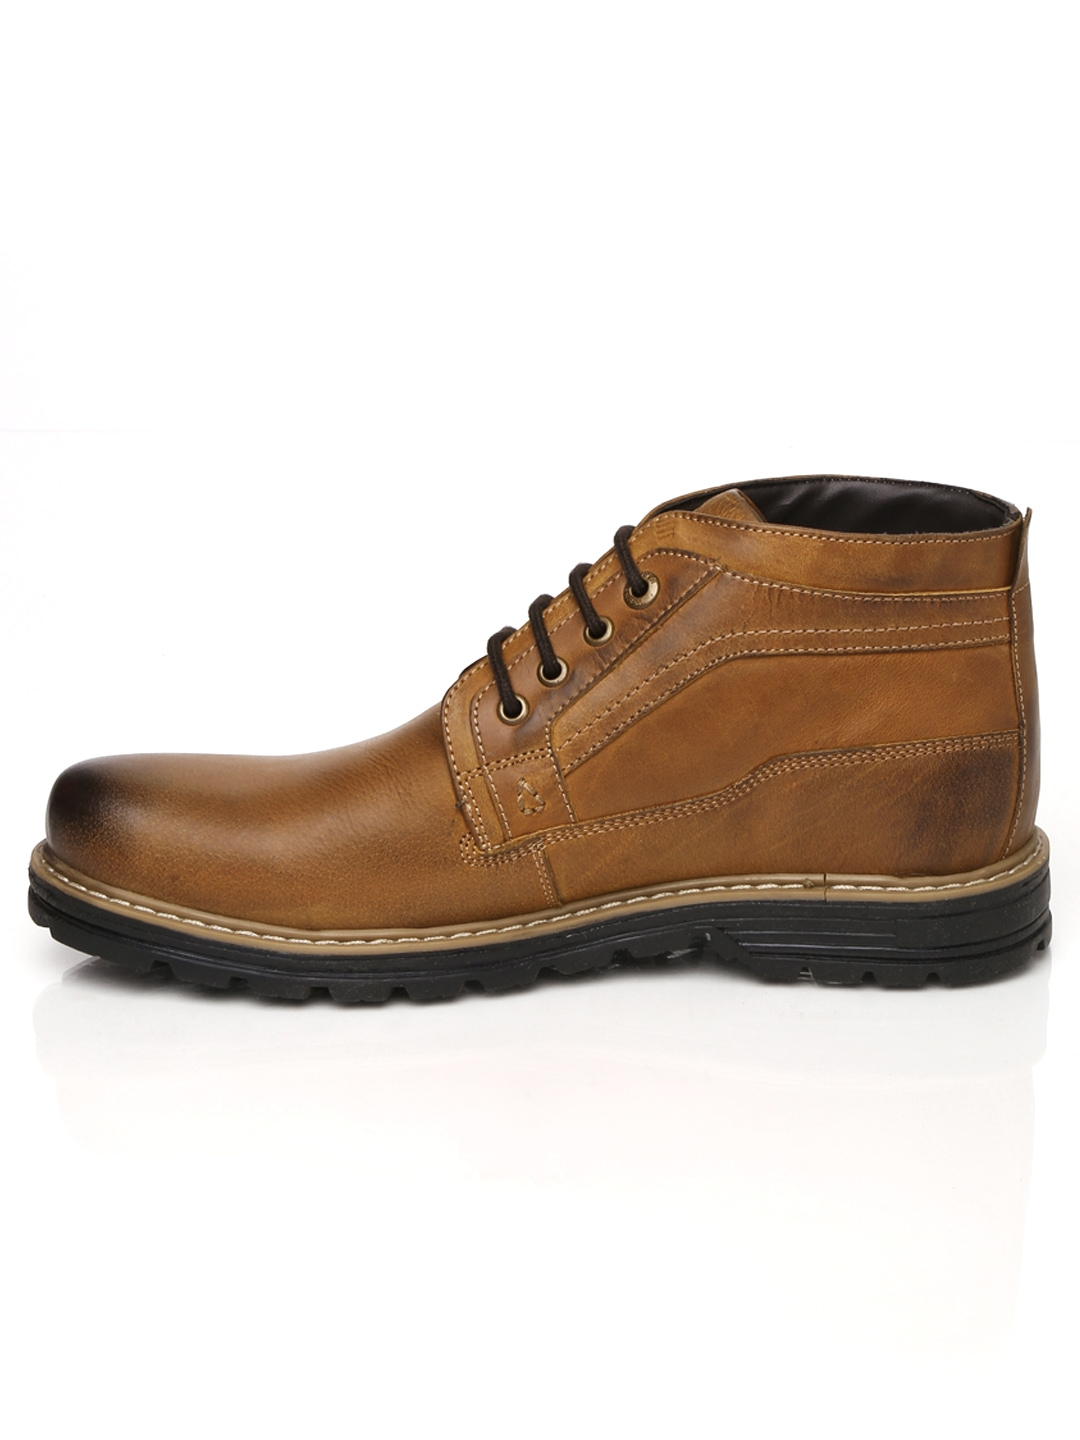 myntra weinbrenner by bata brown mid top leather